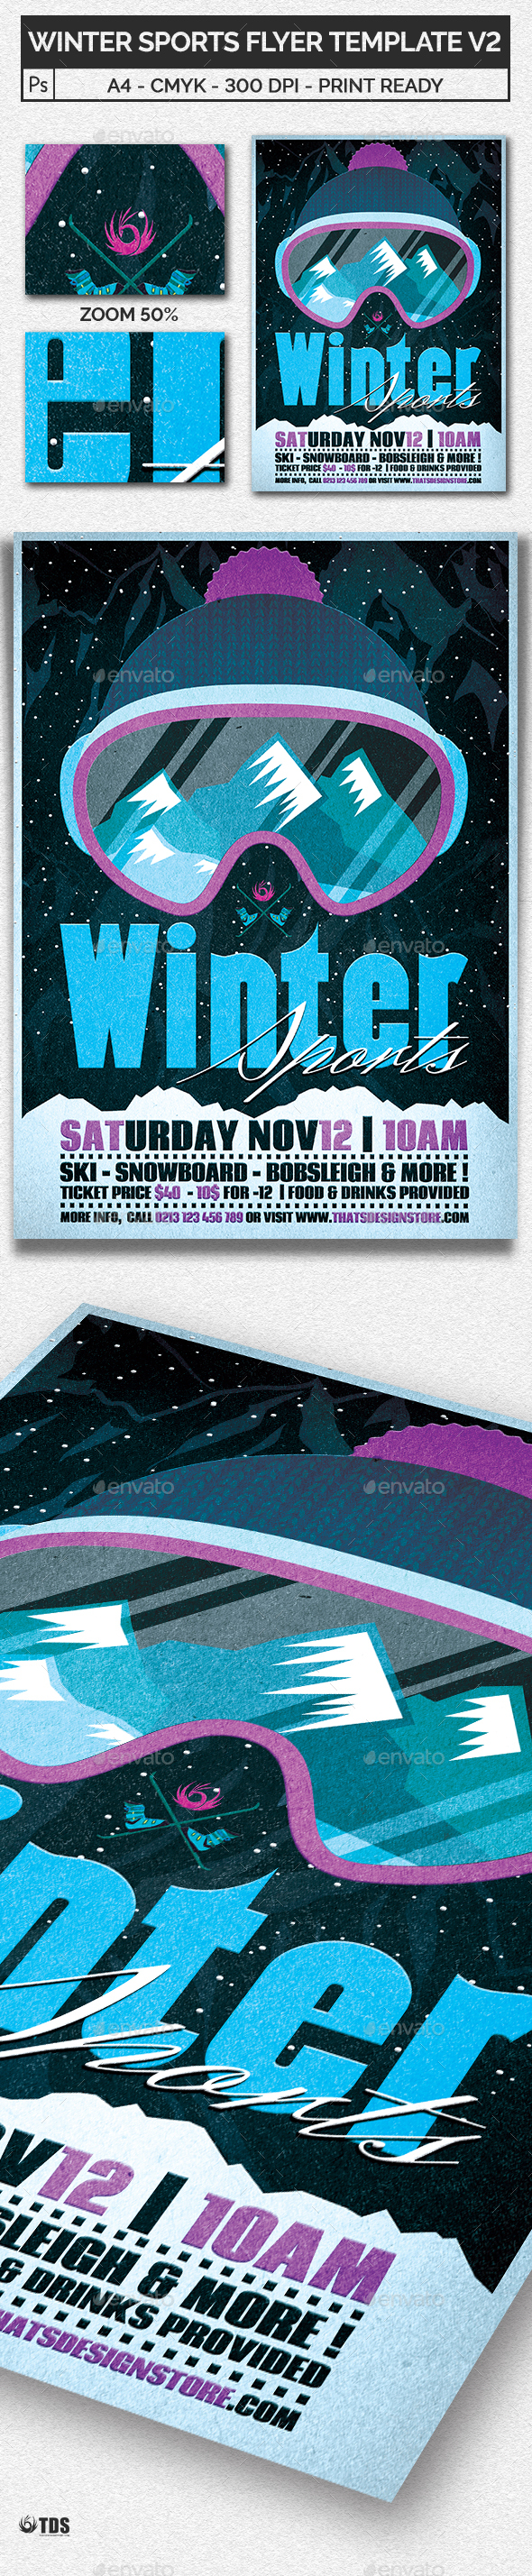 Winter Sports Flyer Template V2 - Sports Events